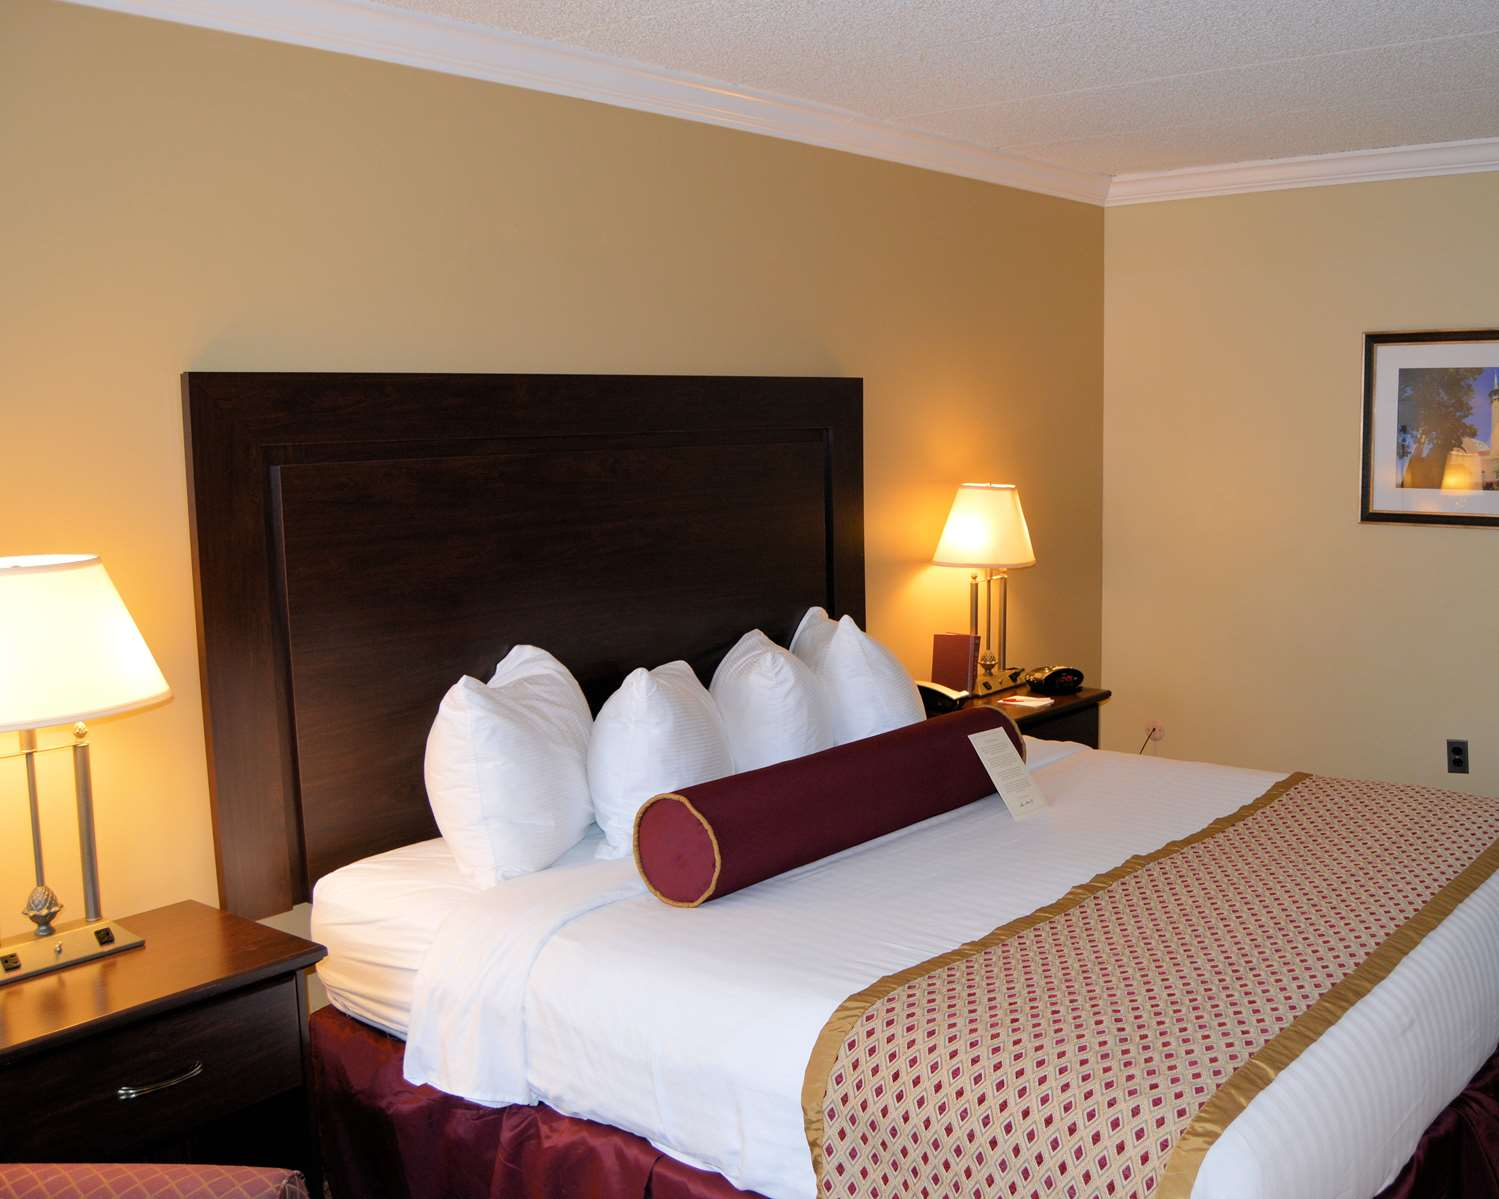 Our King Size Room Was Designed With An Open Concept Ensuring You Have Enough Without Sacrificing Comfort